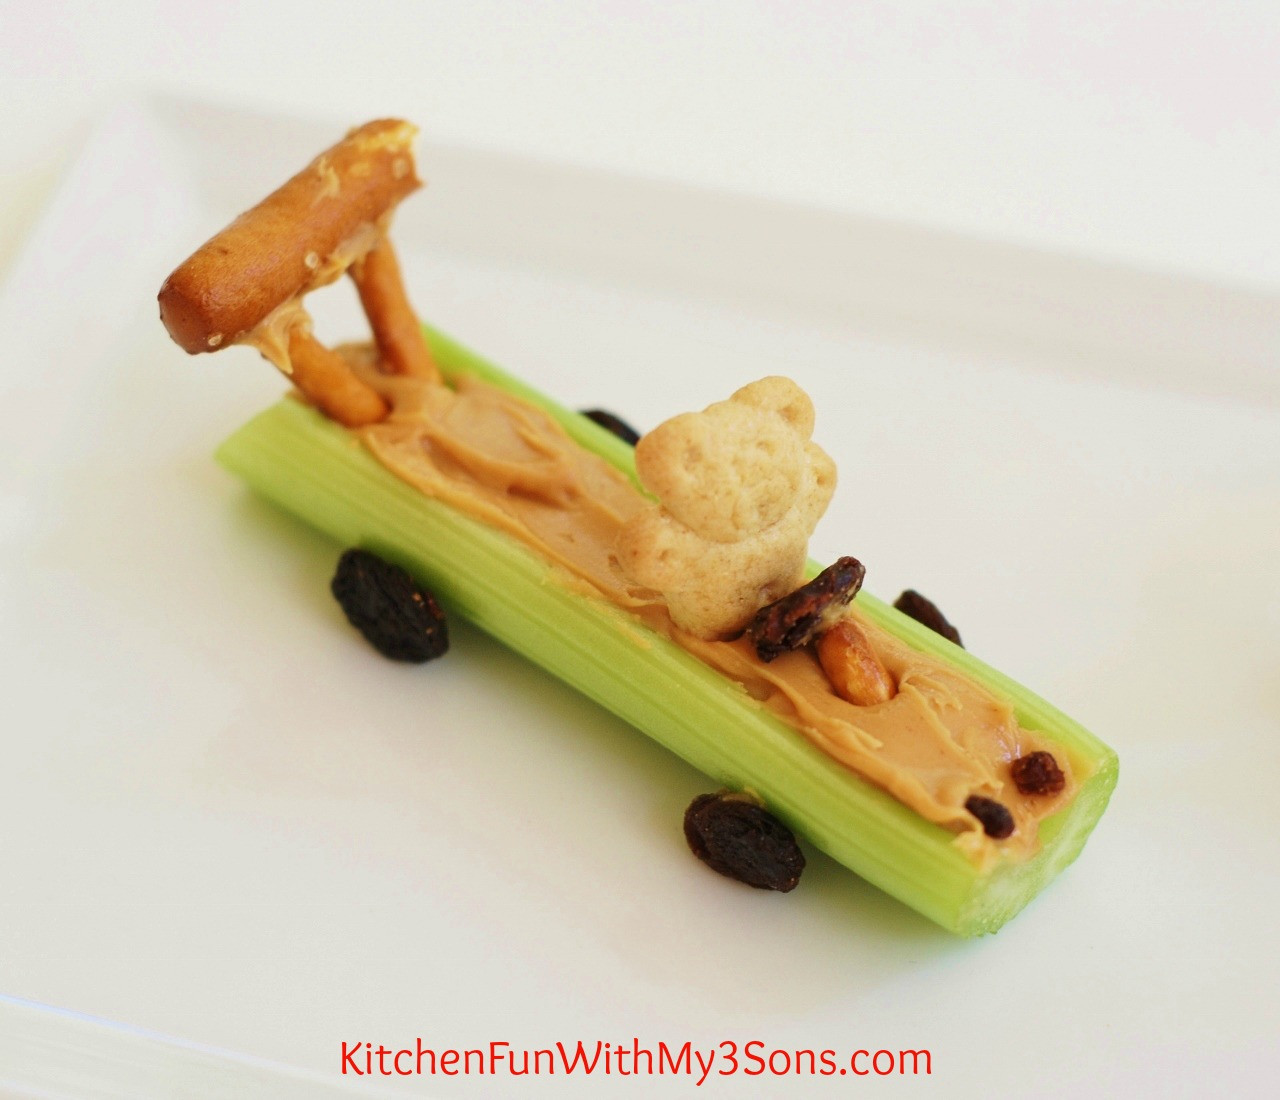 Healthy Car Snacks  Celery Teddy Race Cars Kitchen Fun With My 3 Sons